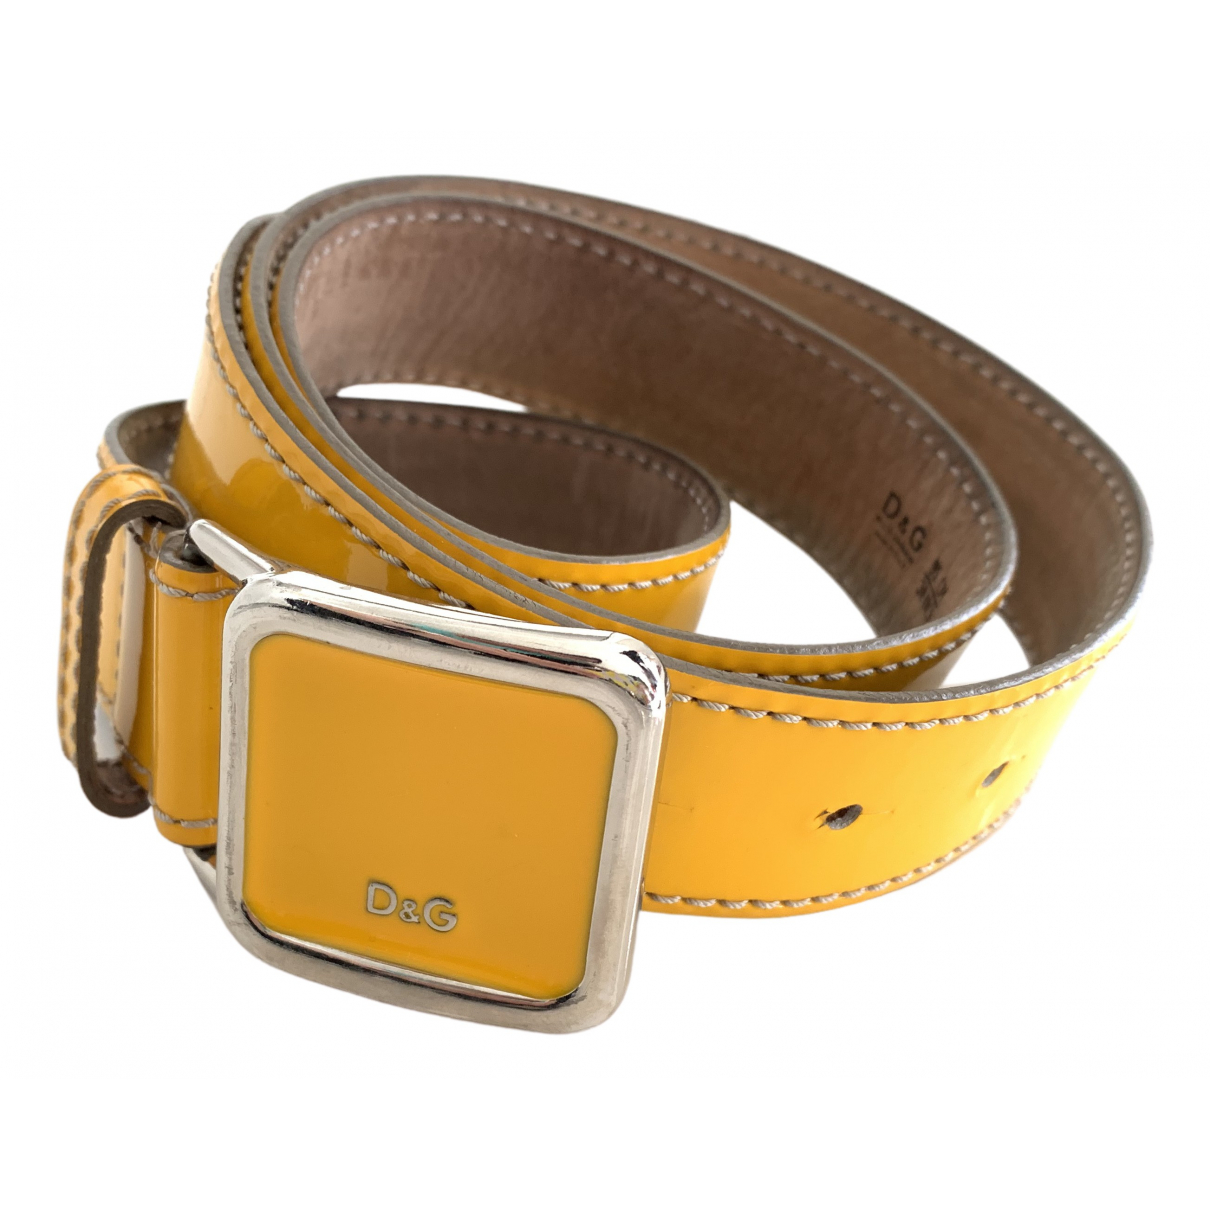 D&g \N Yellow Leather belt for Women 95 cm